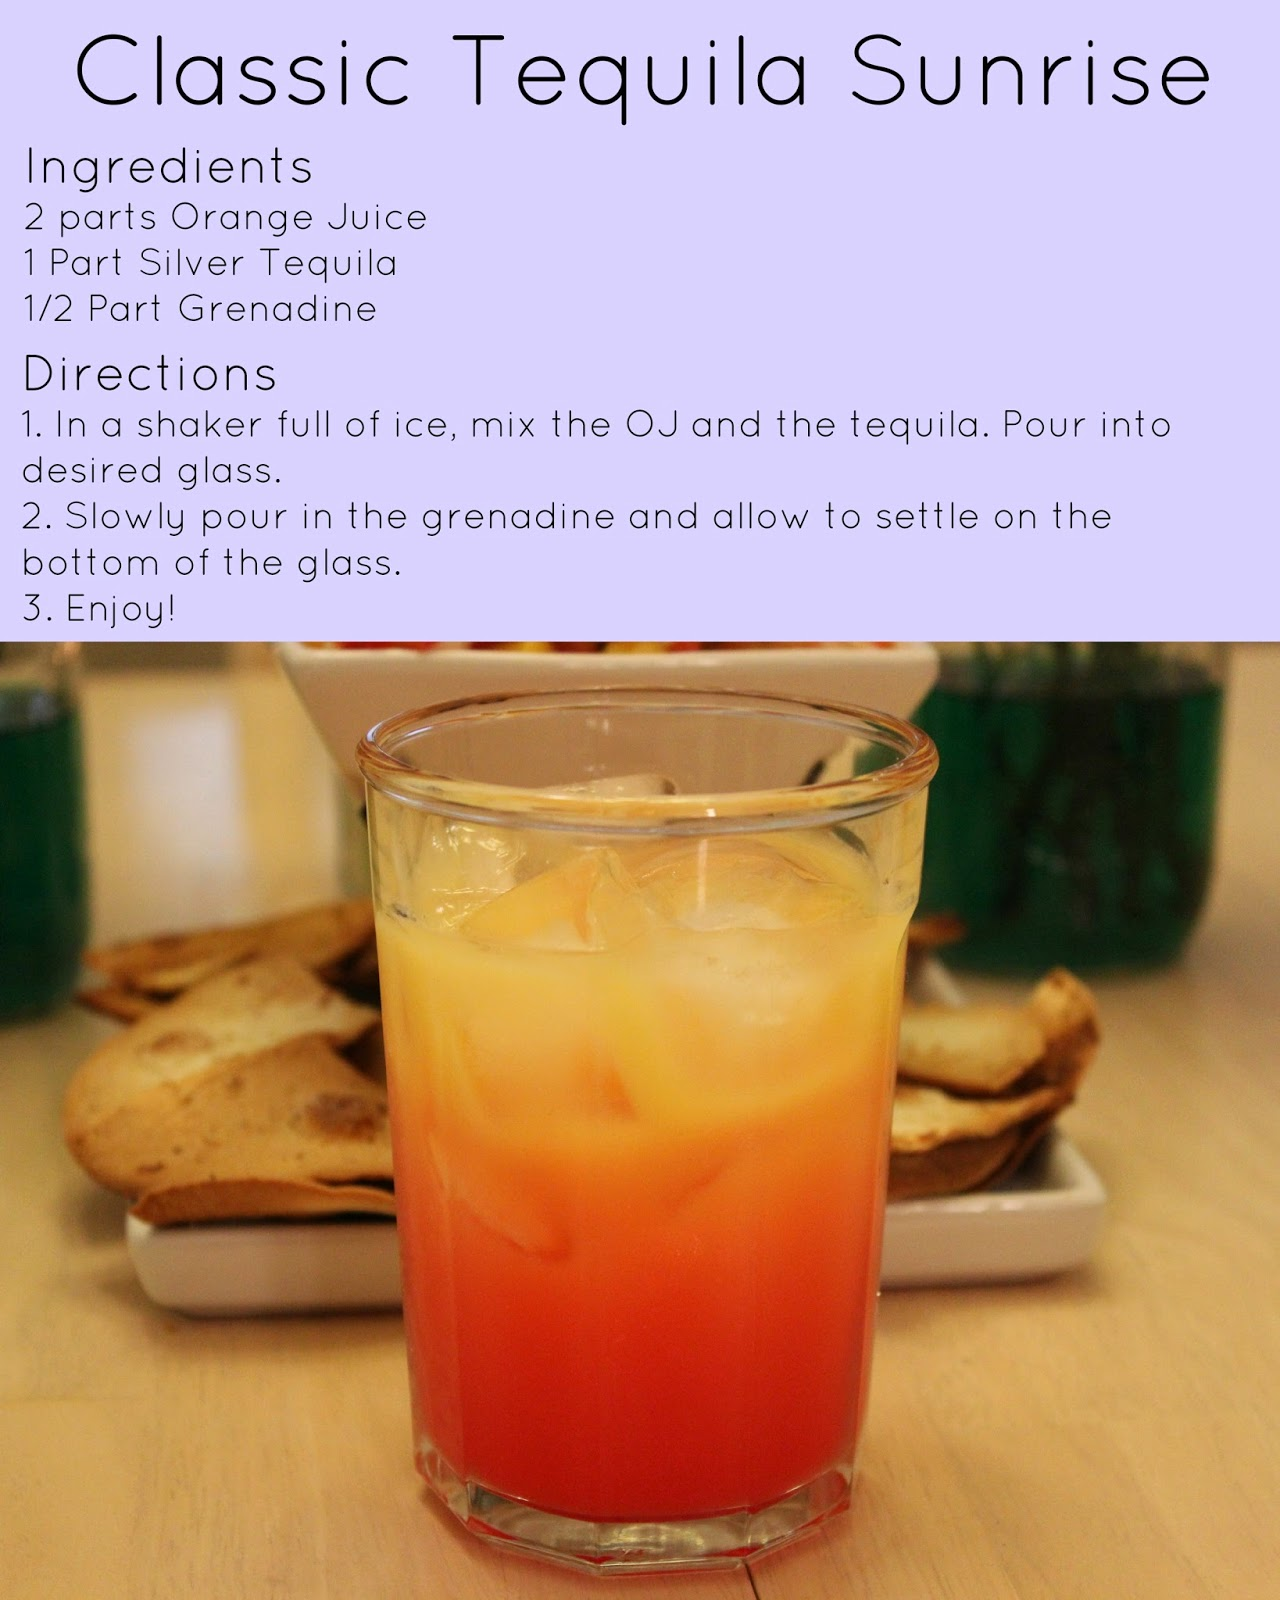 tequila sunrise, tequila, cinco de mayo, thirsty thursday, drink recipe, tequila sunrise recipe, margarita recipe, watermelon margarita recipe, watermelon margarita